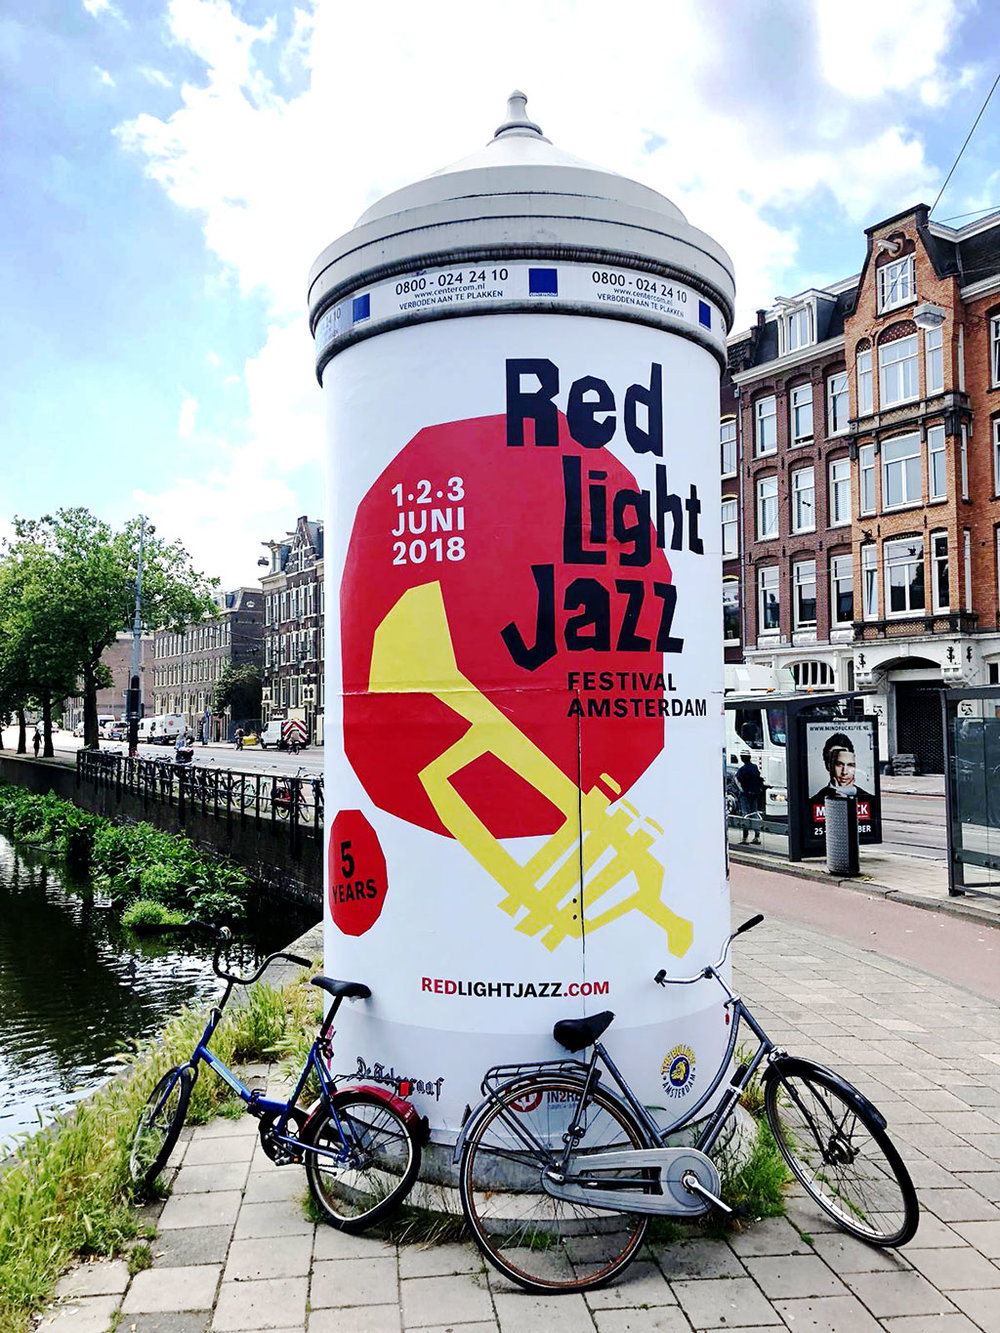 Branding & identity design - Logo and brand identity for the jazz festival in the red light district of Amsterdam. This fifth anniversary of Red Light Jazz focusses on the trumpet and legendary jazz trumpet player Chet Baker who died 30 years ago in Amsterdam.